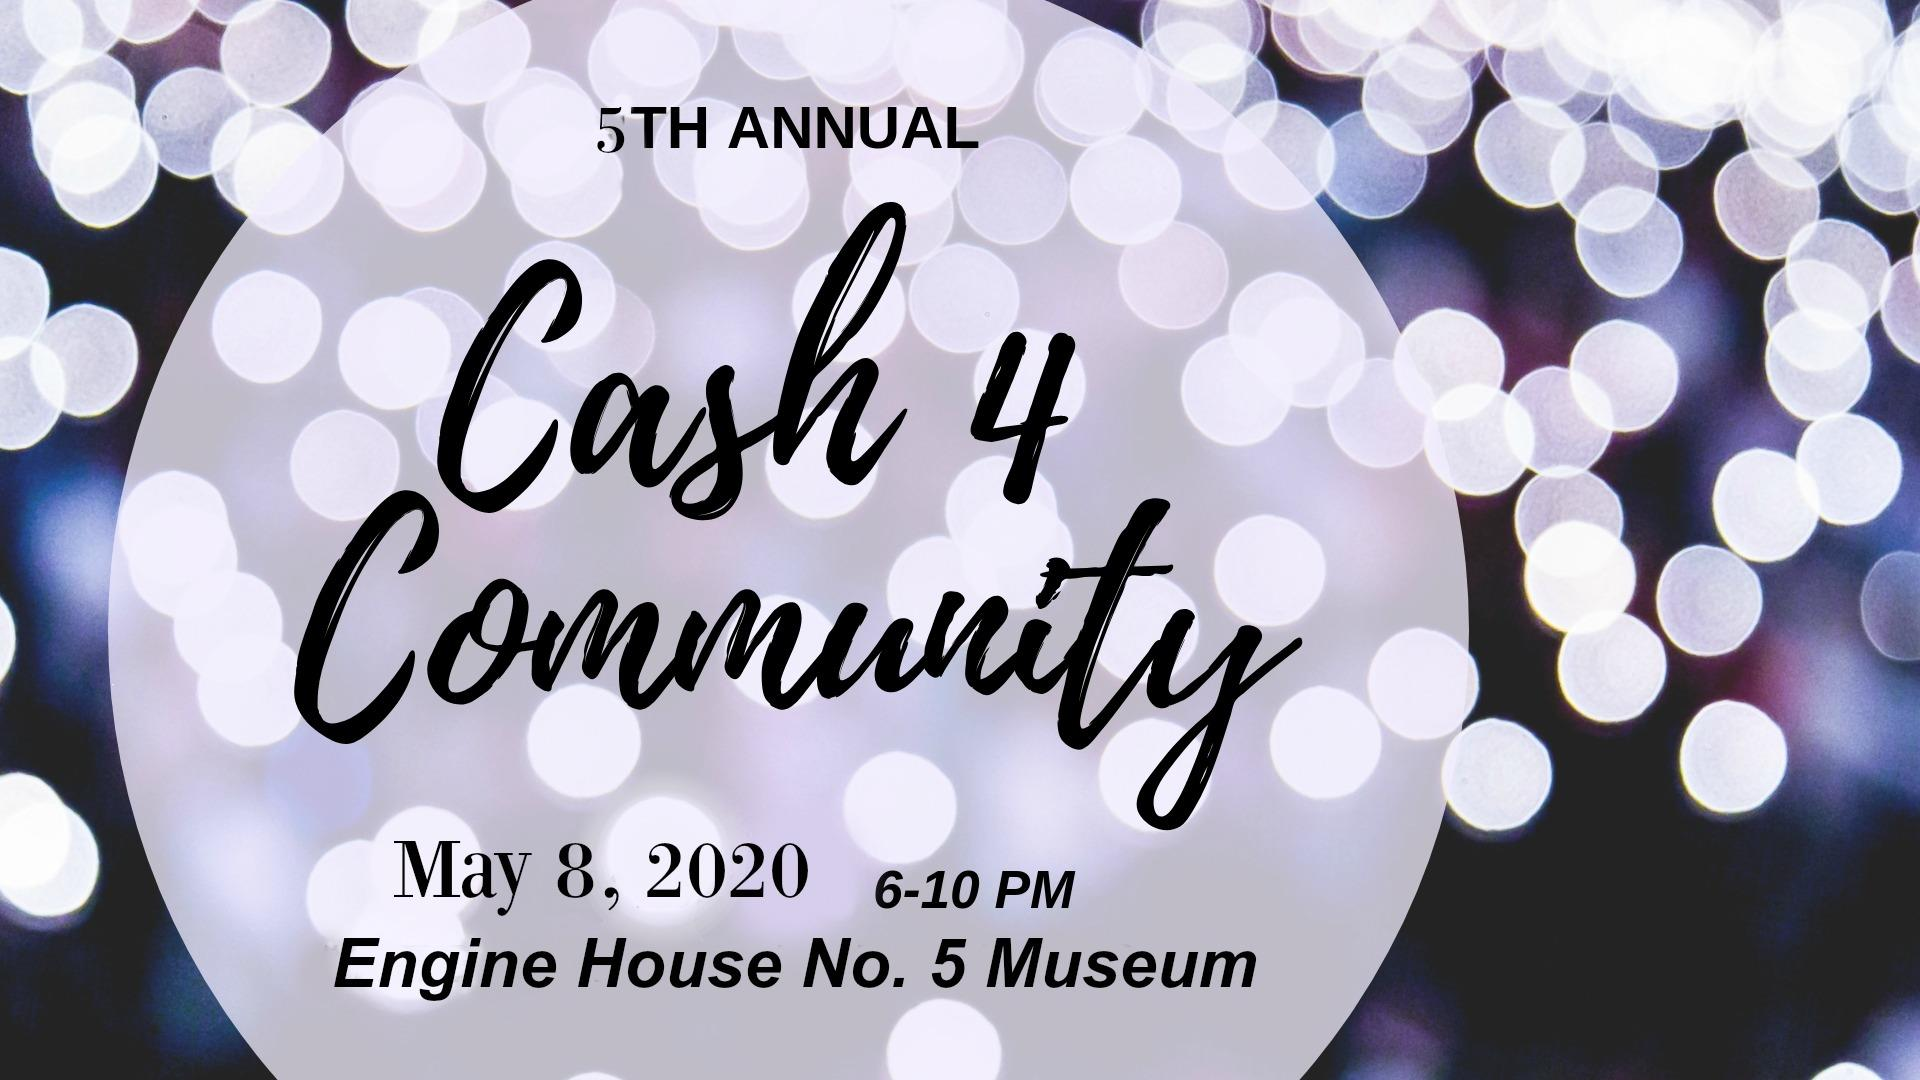 Cash for Community